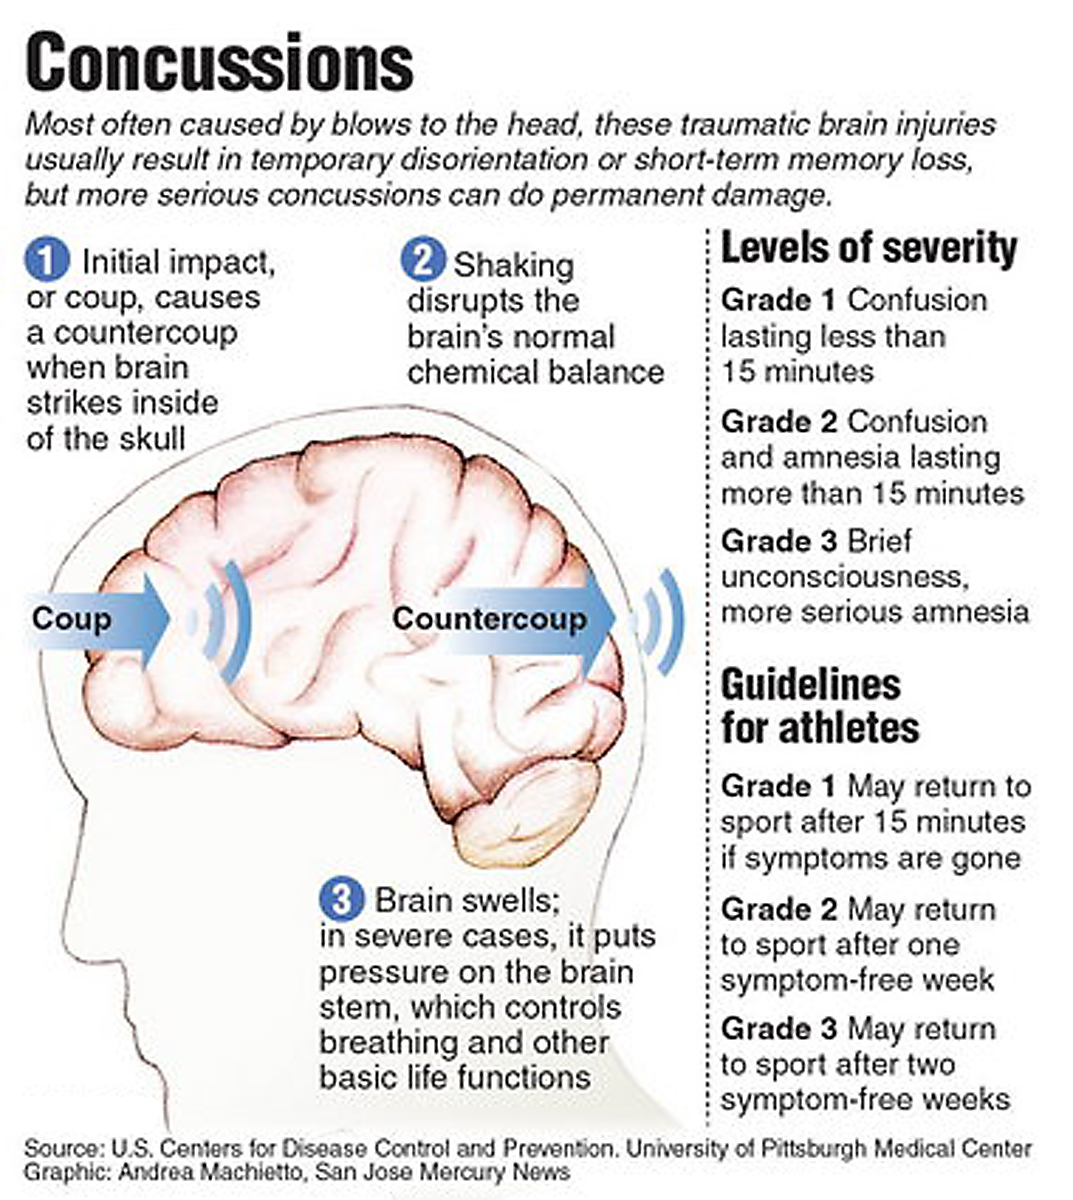 history of concussions Conclusions our study suggests that players with a history of previous  concussions are more likely to have future concussive injuries than those with no  history.